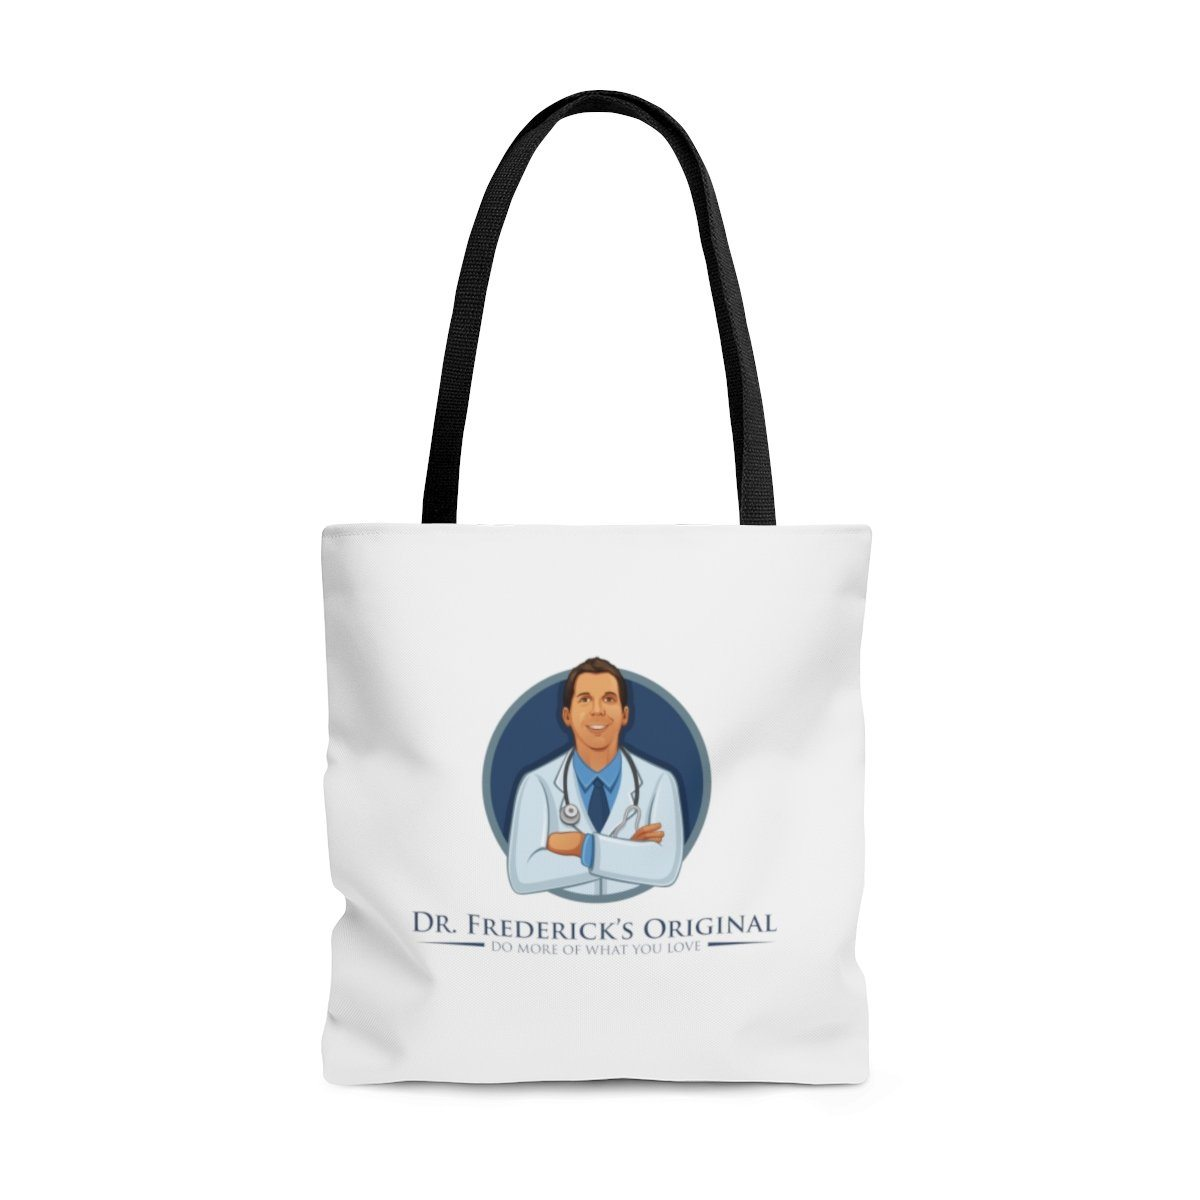 "Dr. Frederick's Original Tote Bag - ""Do More of What You Love"" Bags Printify"